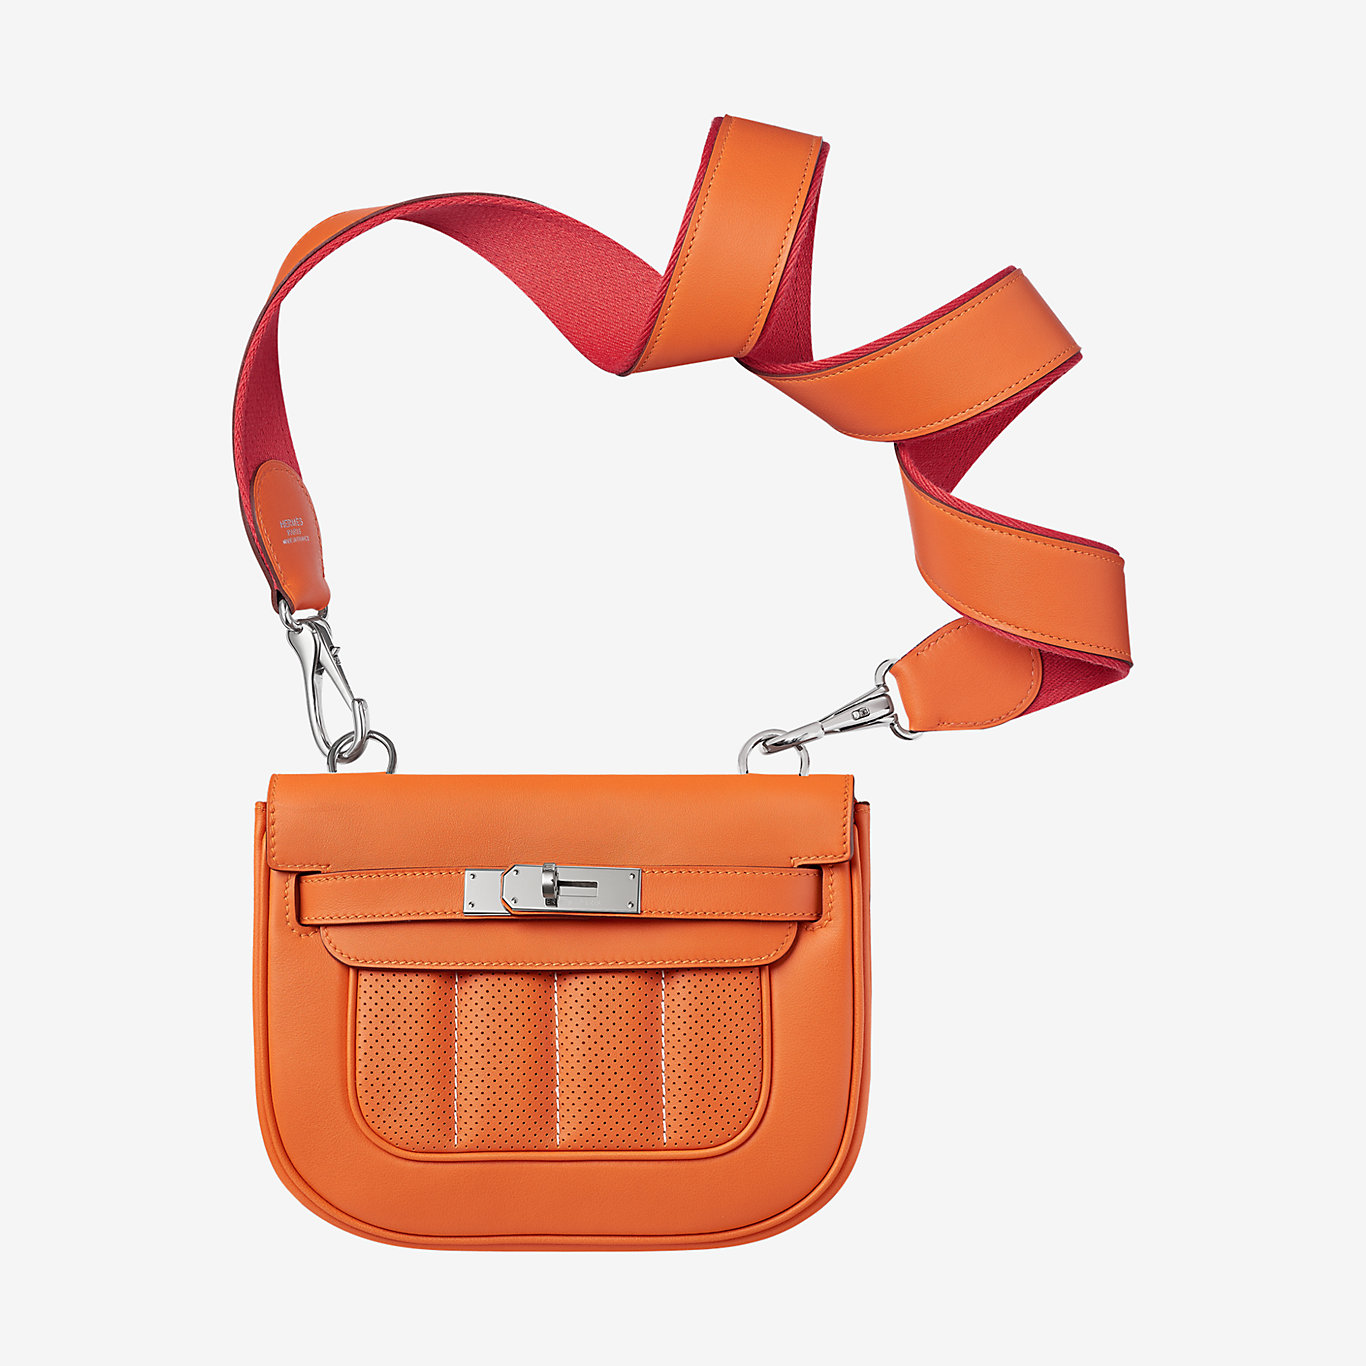 Berline mini bag, mini model - front